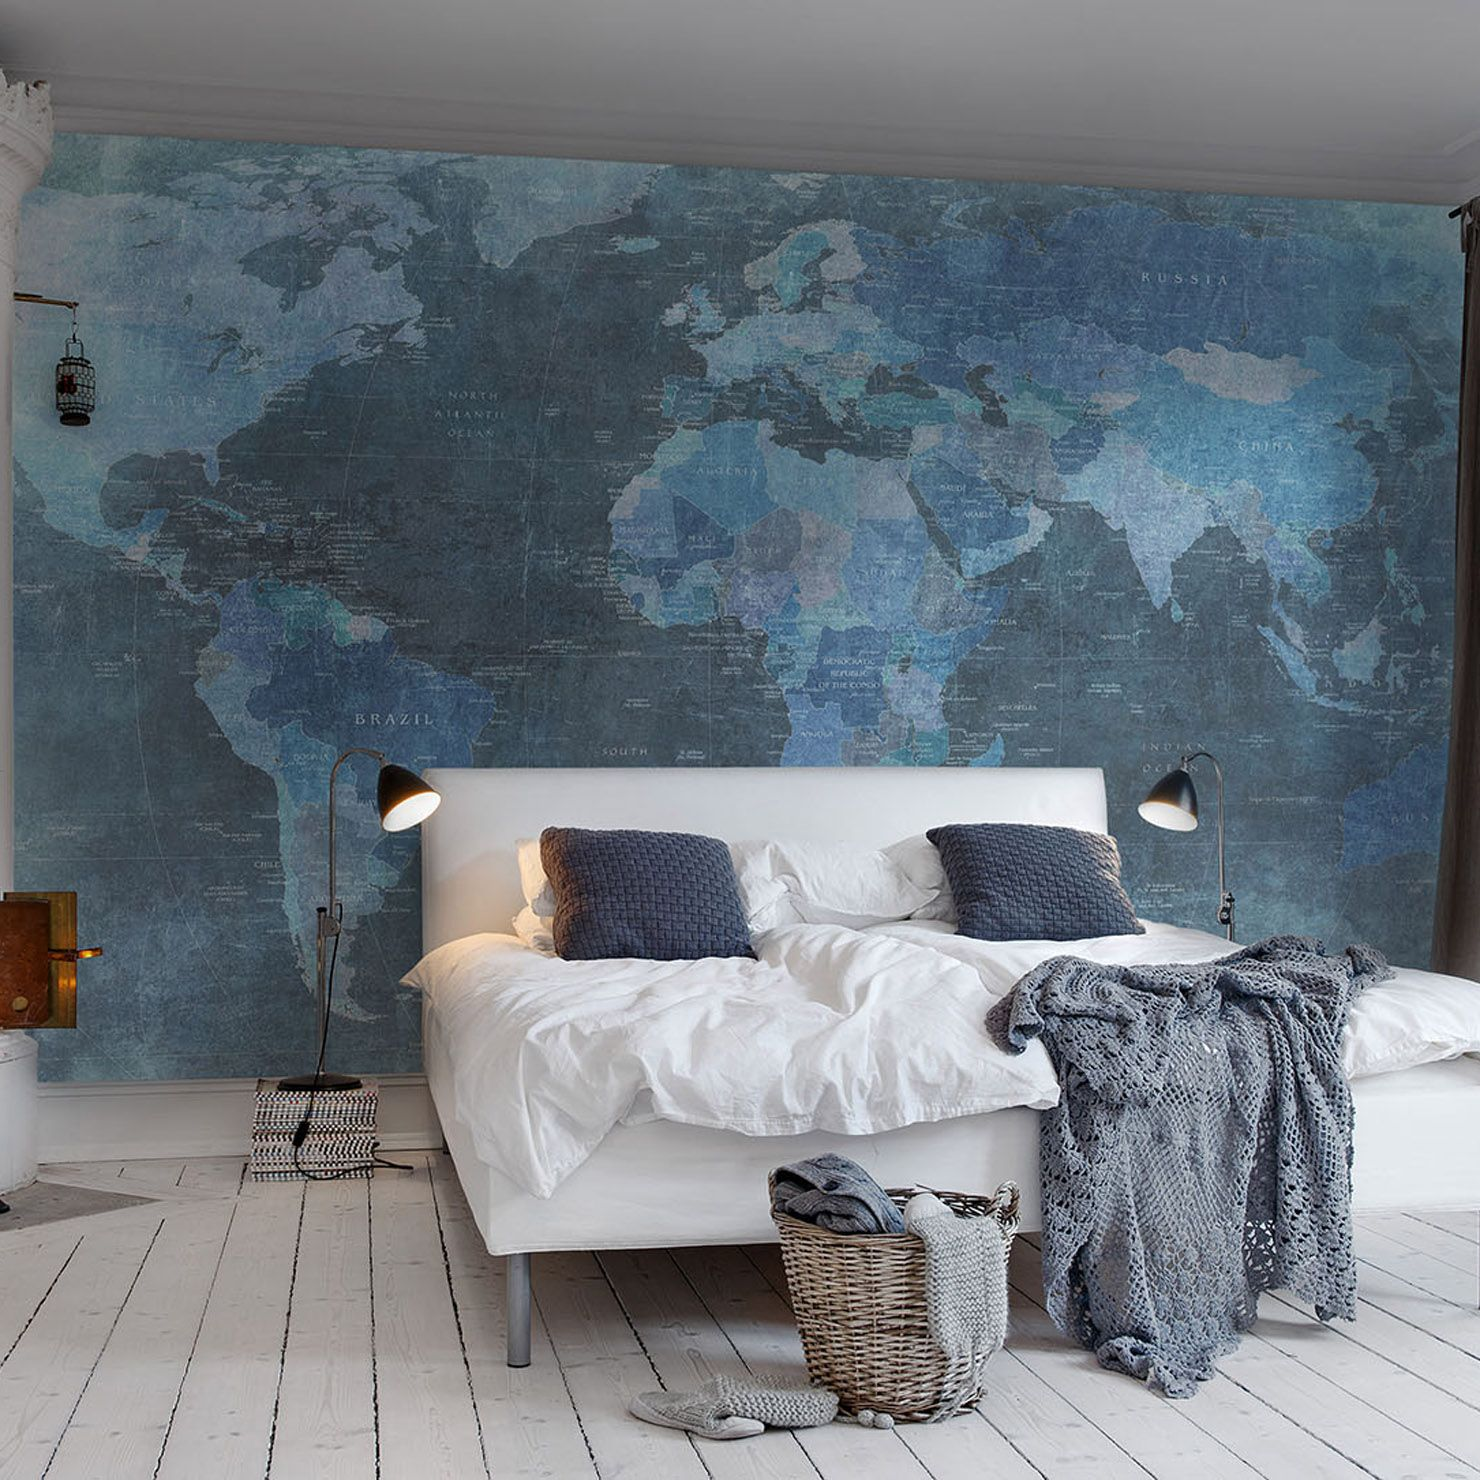 Best 25 world map wallpaper ideas on pinterest world for Boys room mural